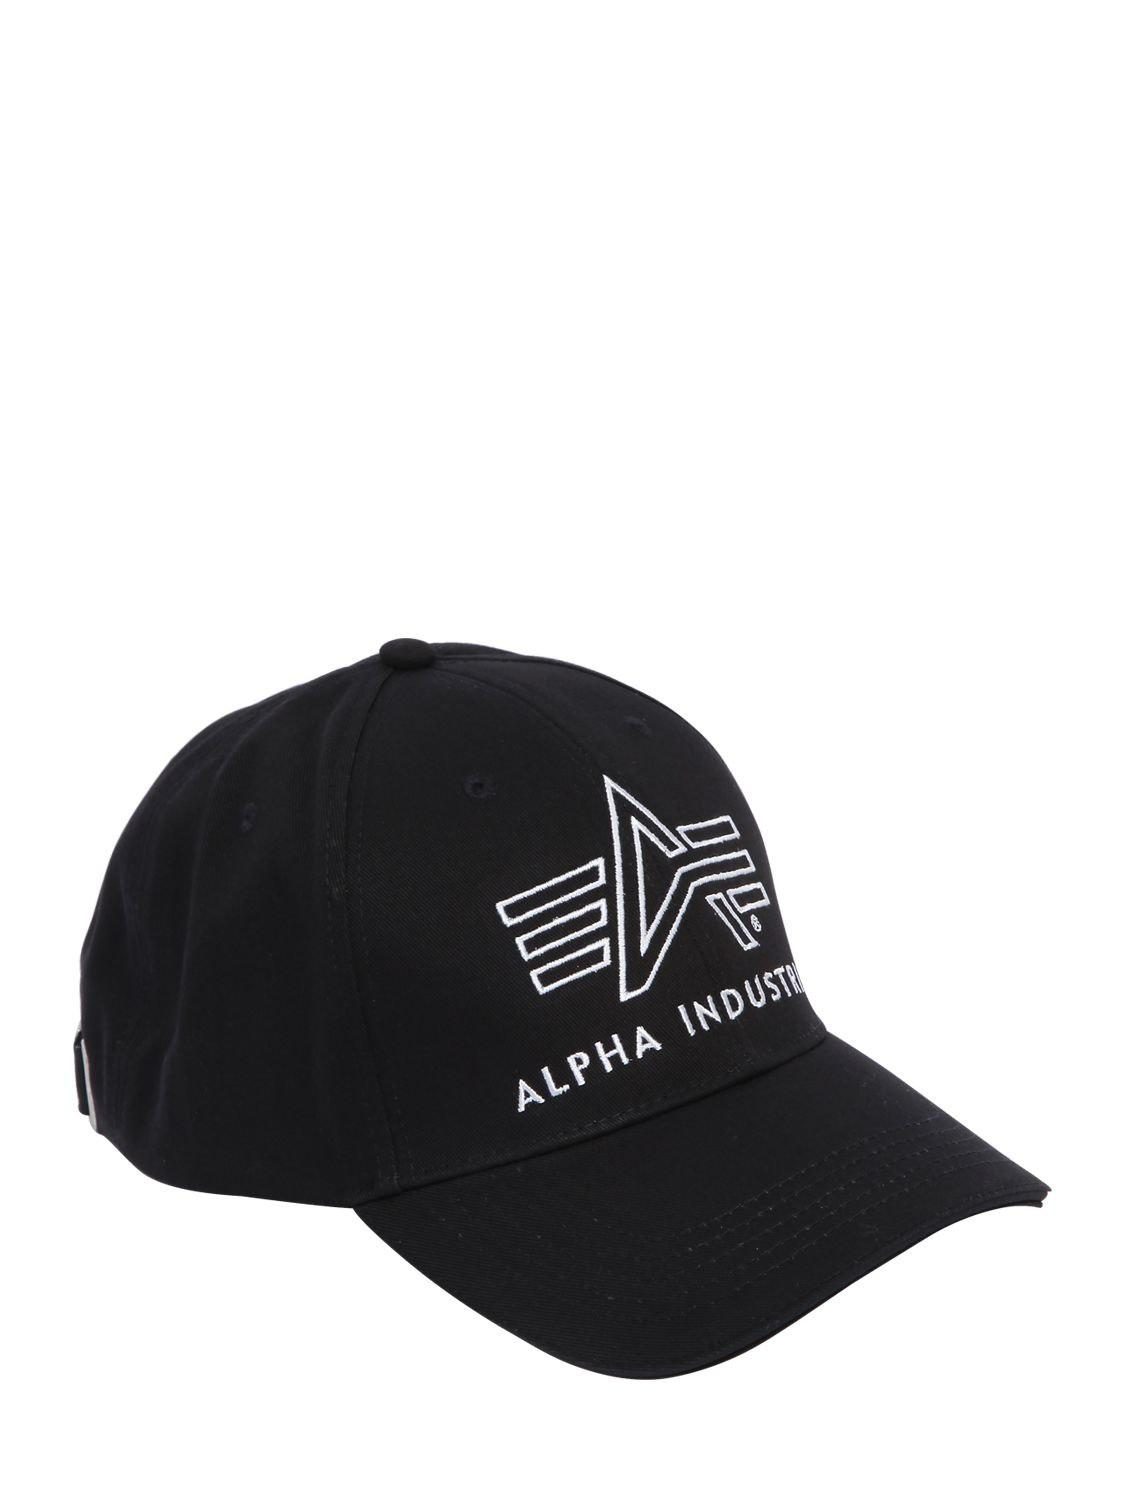 255057b67 Alpha Industries Black Big A Classic Trucker Hat for men